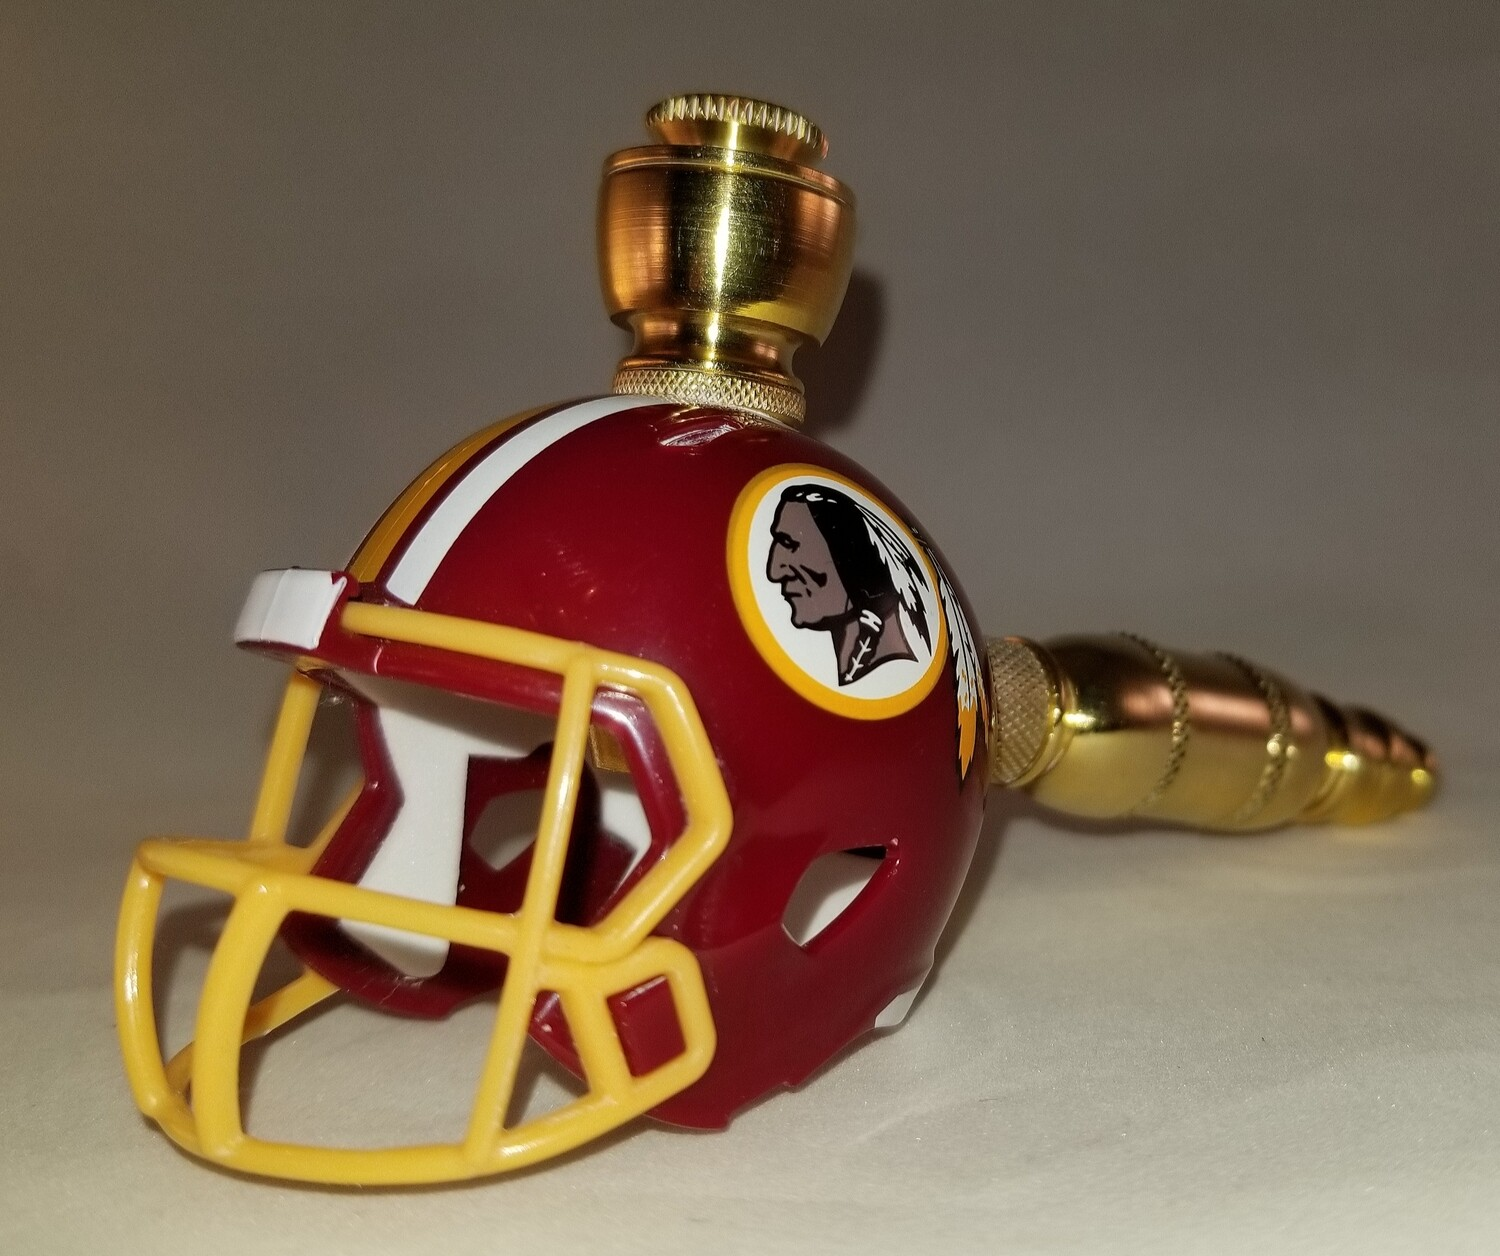 WASHINGTON REDSKINS NFL FOOTBALL HELMET SMOKING PIPE Straight/Brass